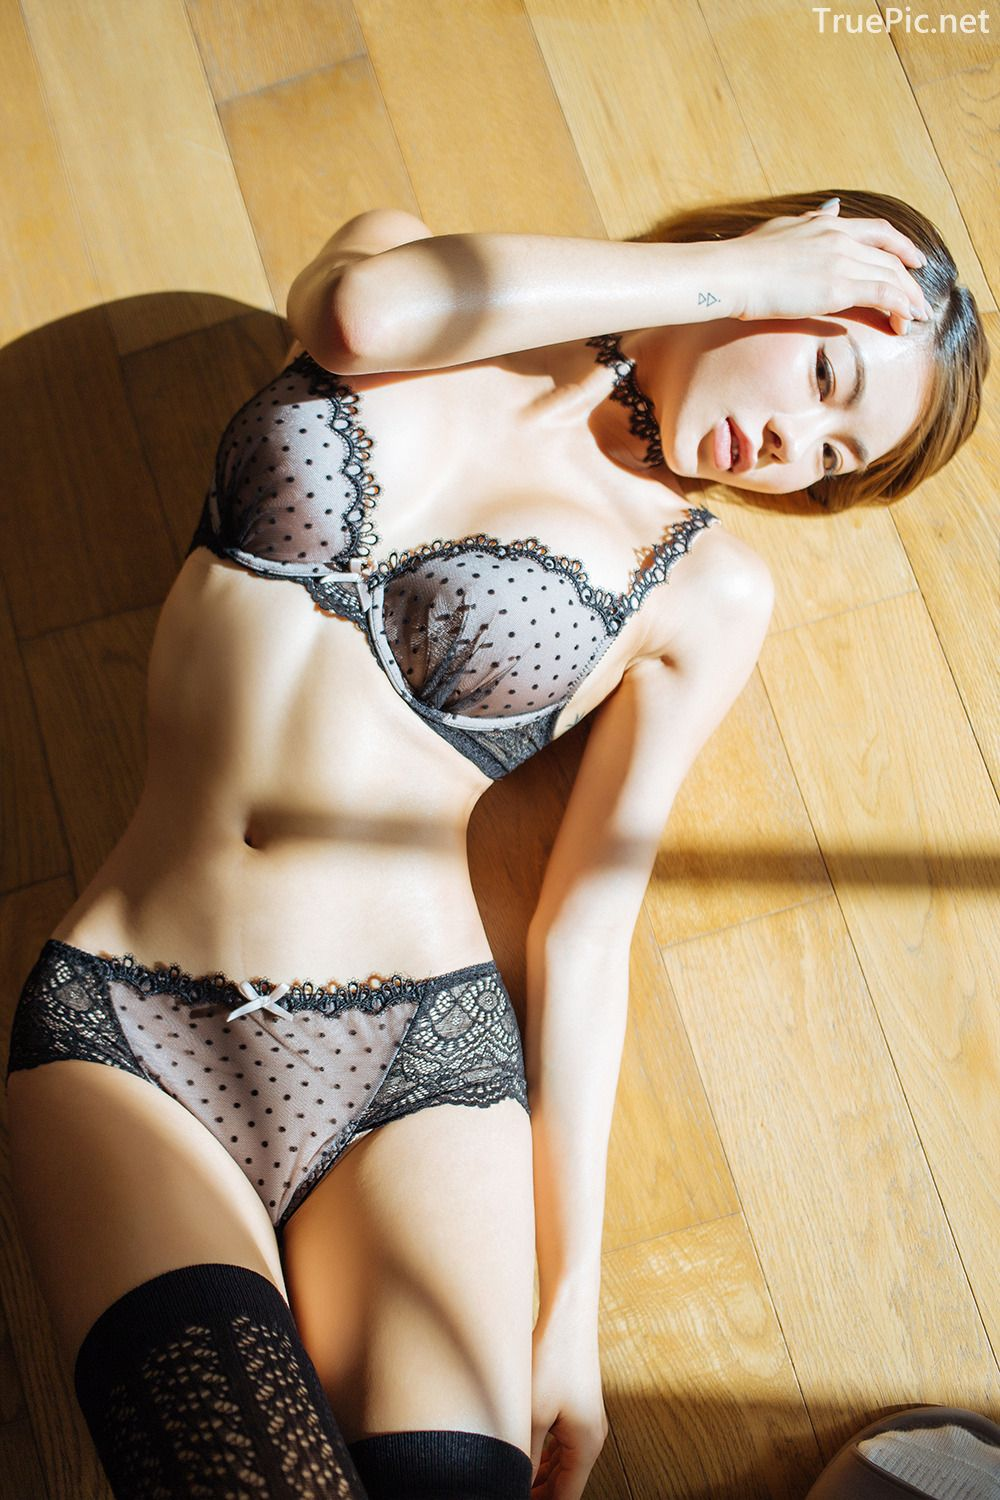 Lingerie queen An Seo Rin - Choker Lingerie Set - Korean model fashion - Picture 3